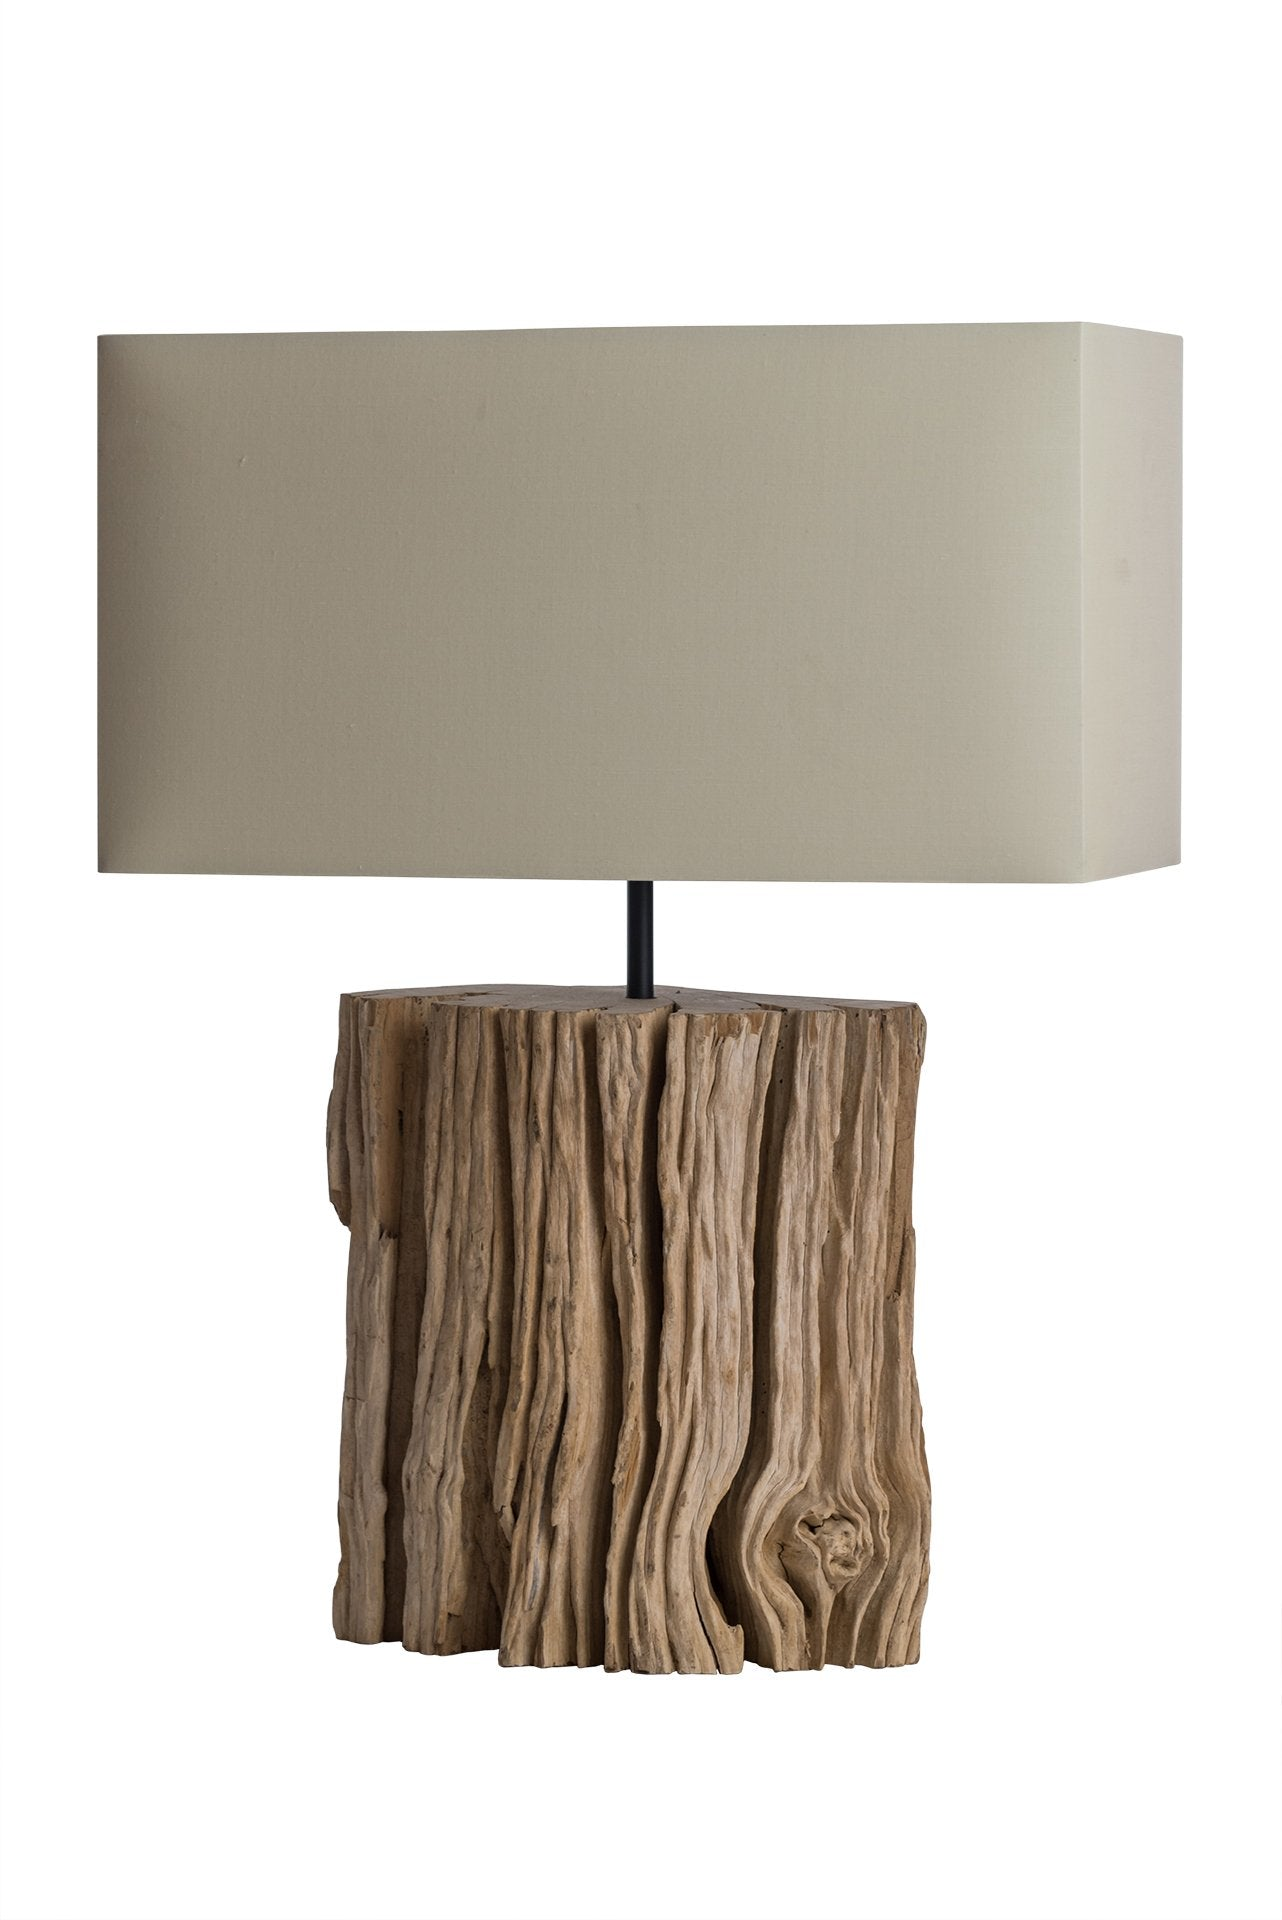 Driftwood Bark Table Lamp - O'THENTIQUE